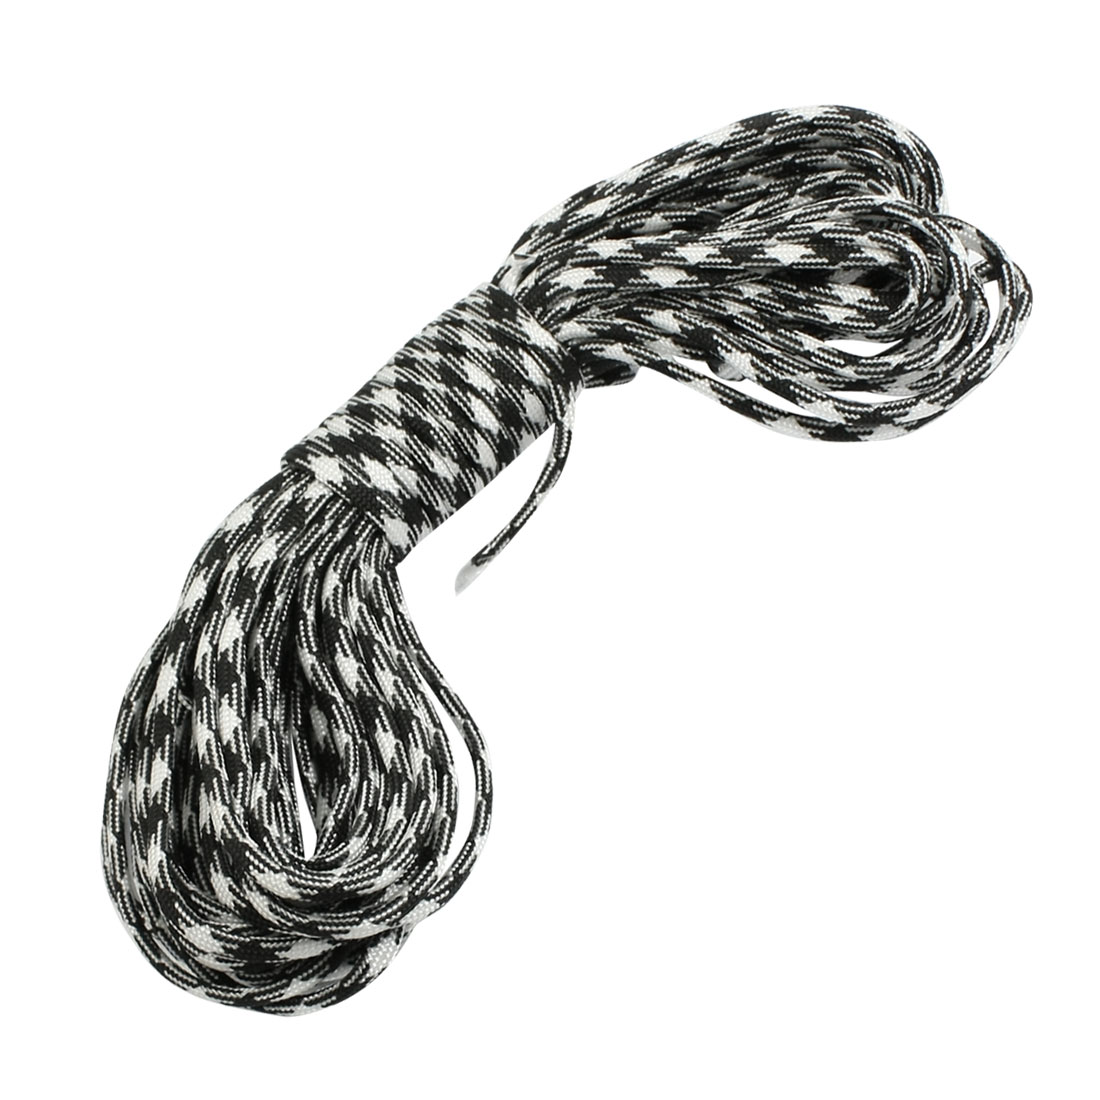 Emergency Survival Rhombus Pattern Nylon Braided Cord Black White 10 Meter